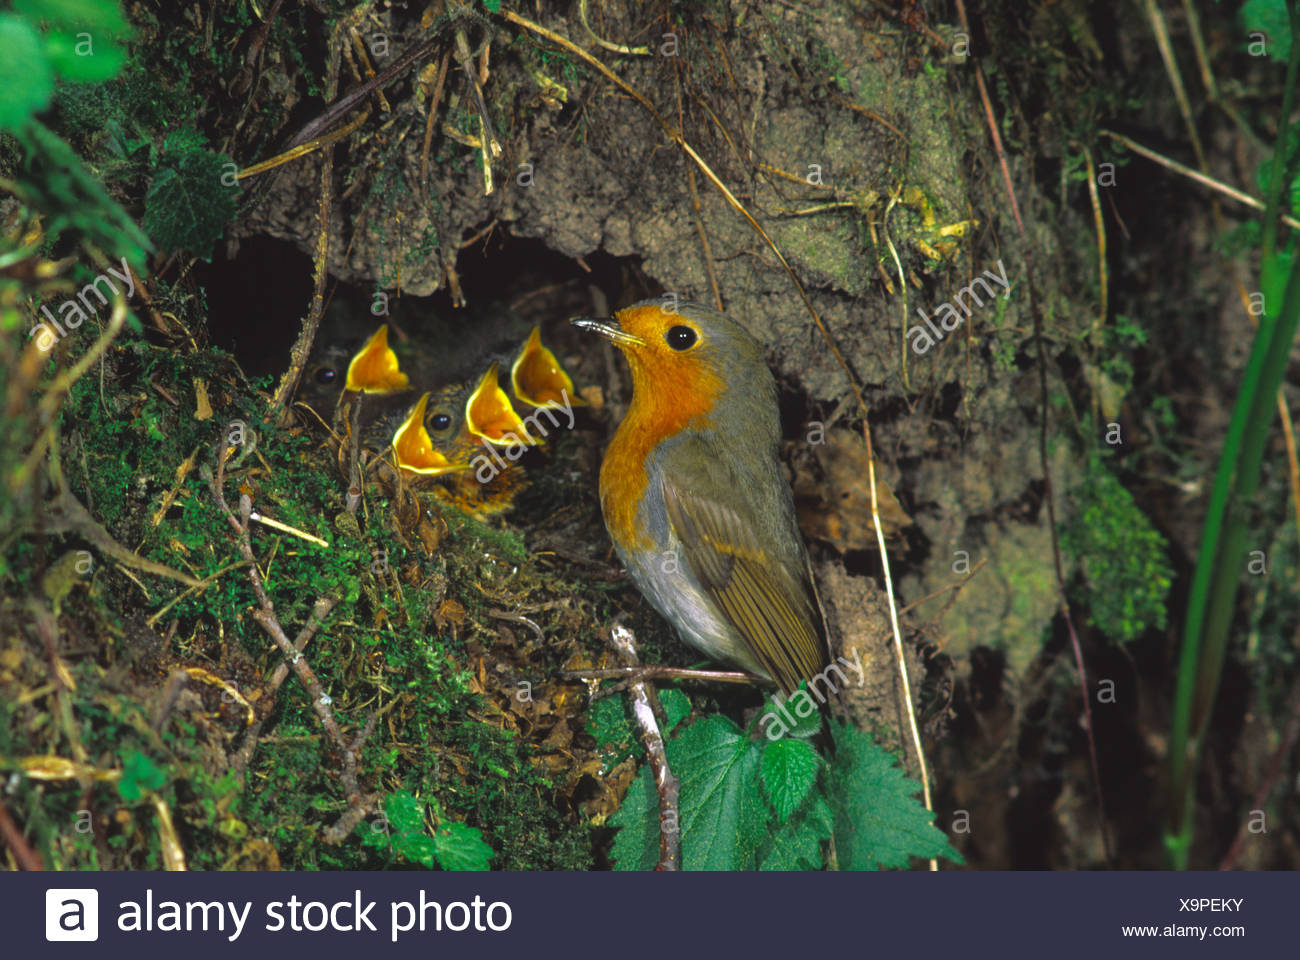 Robin Robins (Erithacus rubecula) nest with fledglings Stock Photo